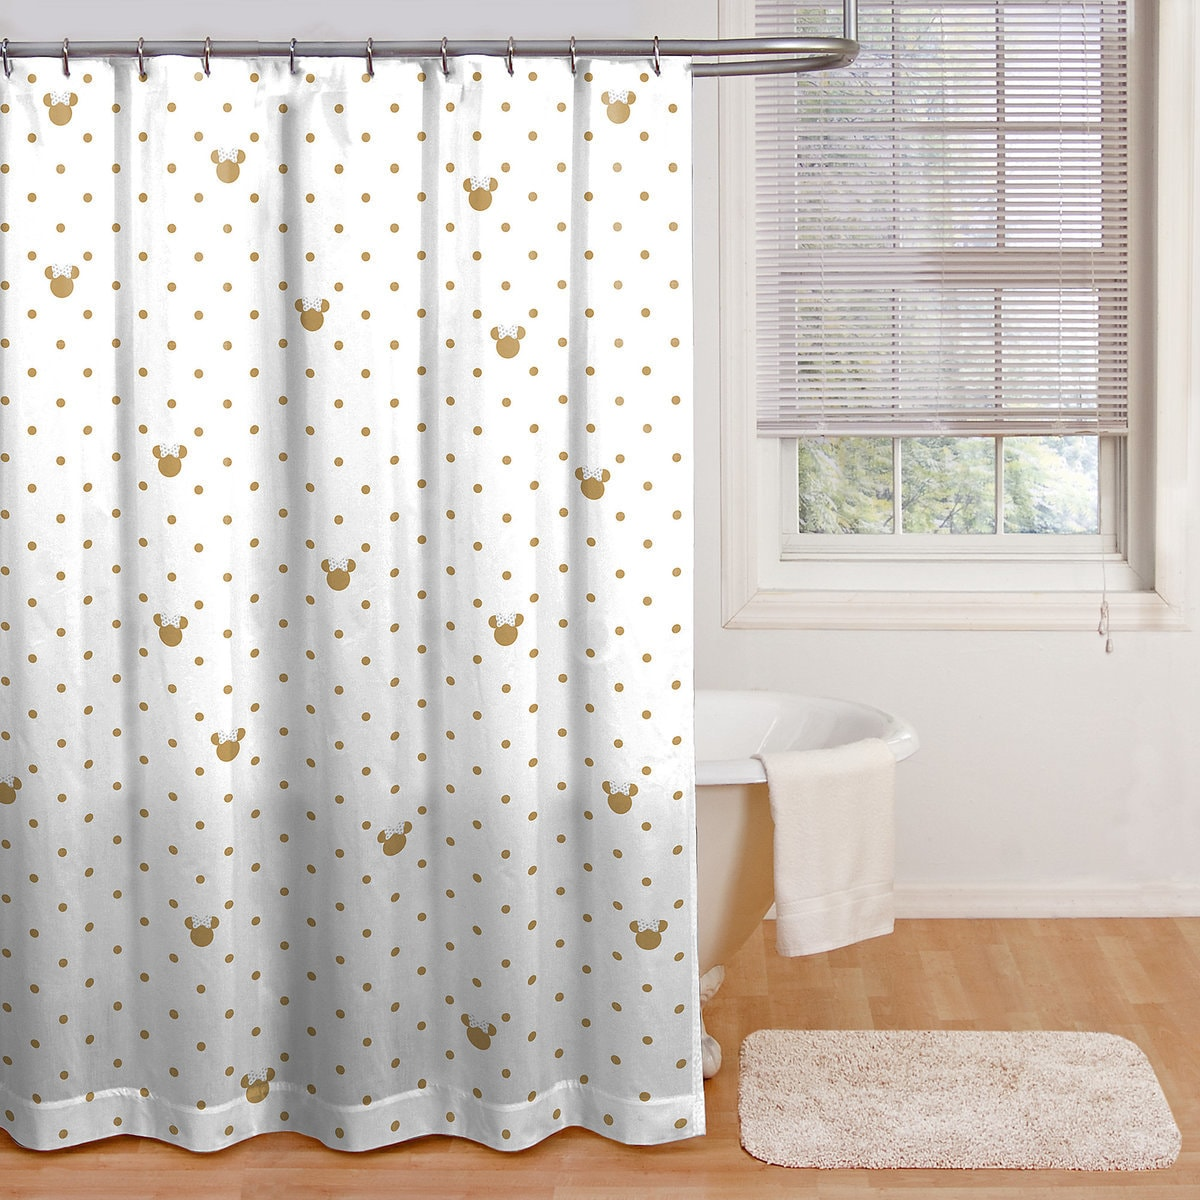 Minnie Mouse Gold Dots Shower Curtain | shopDisney